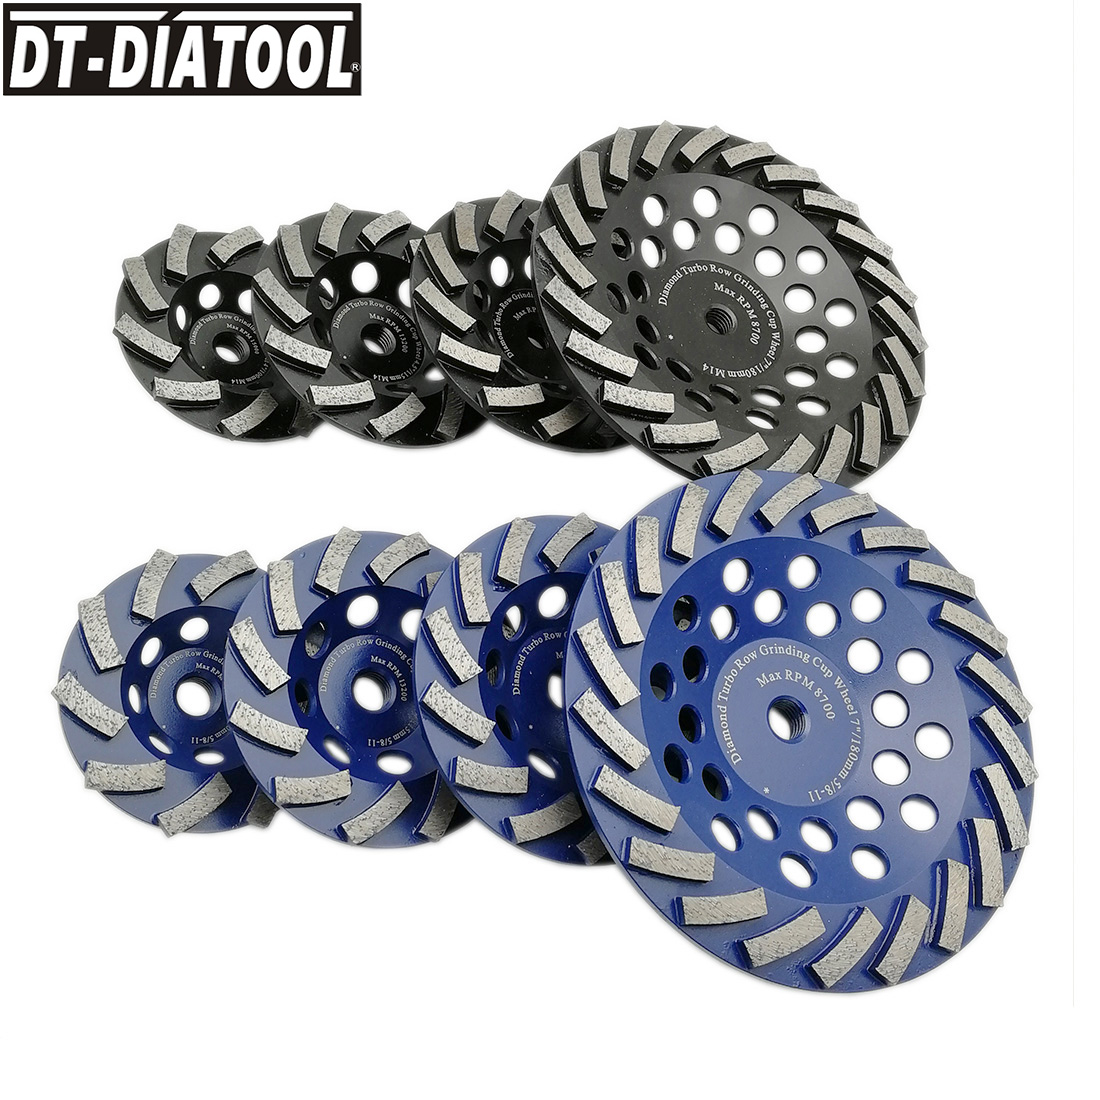 DT-DIATOOL 1pc Dia 100/115/125/180mm Diamond Segmented Turbo Cup Grinding Wheel for Concrete granite with M14 or 5/8-11 thread free shipping coarse medium fine grit 4 inch diamond turbo cup wheels m14 thread for grinding concrete and stone 3pcs set